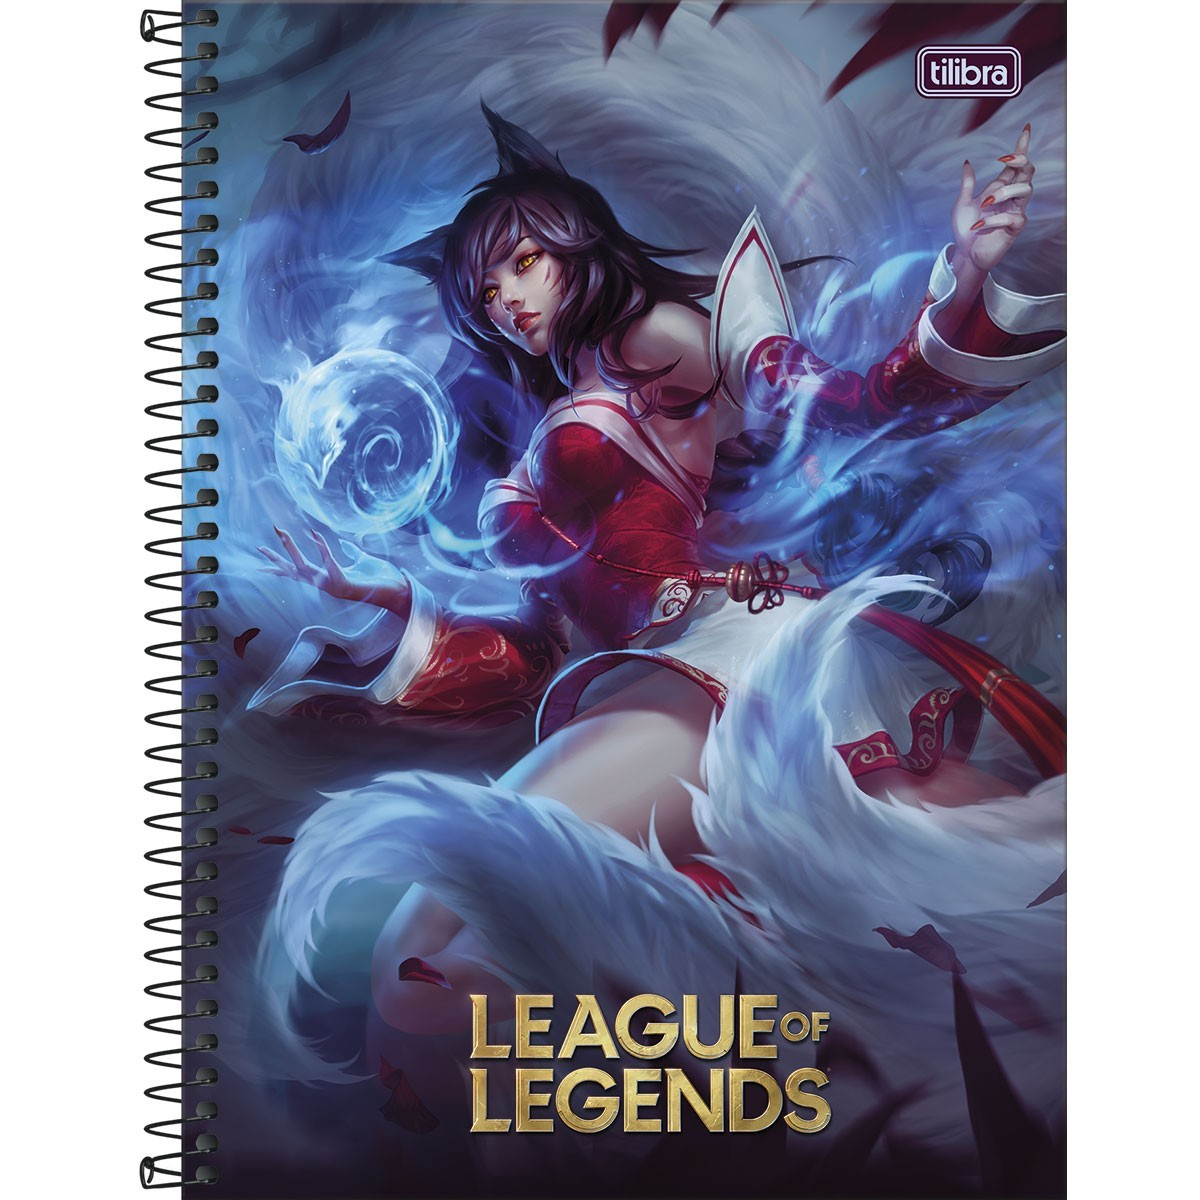 Caderno Espiral Capa Dura Universitário 12 Matérias League of Legends Ahri 240 Folhas